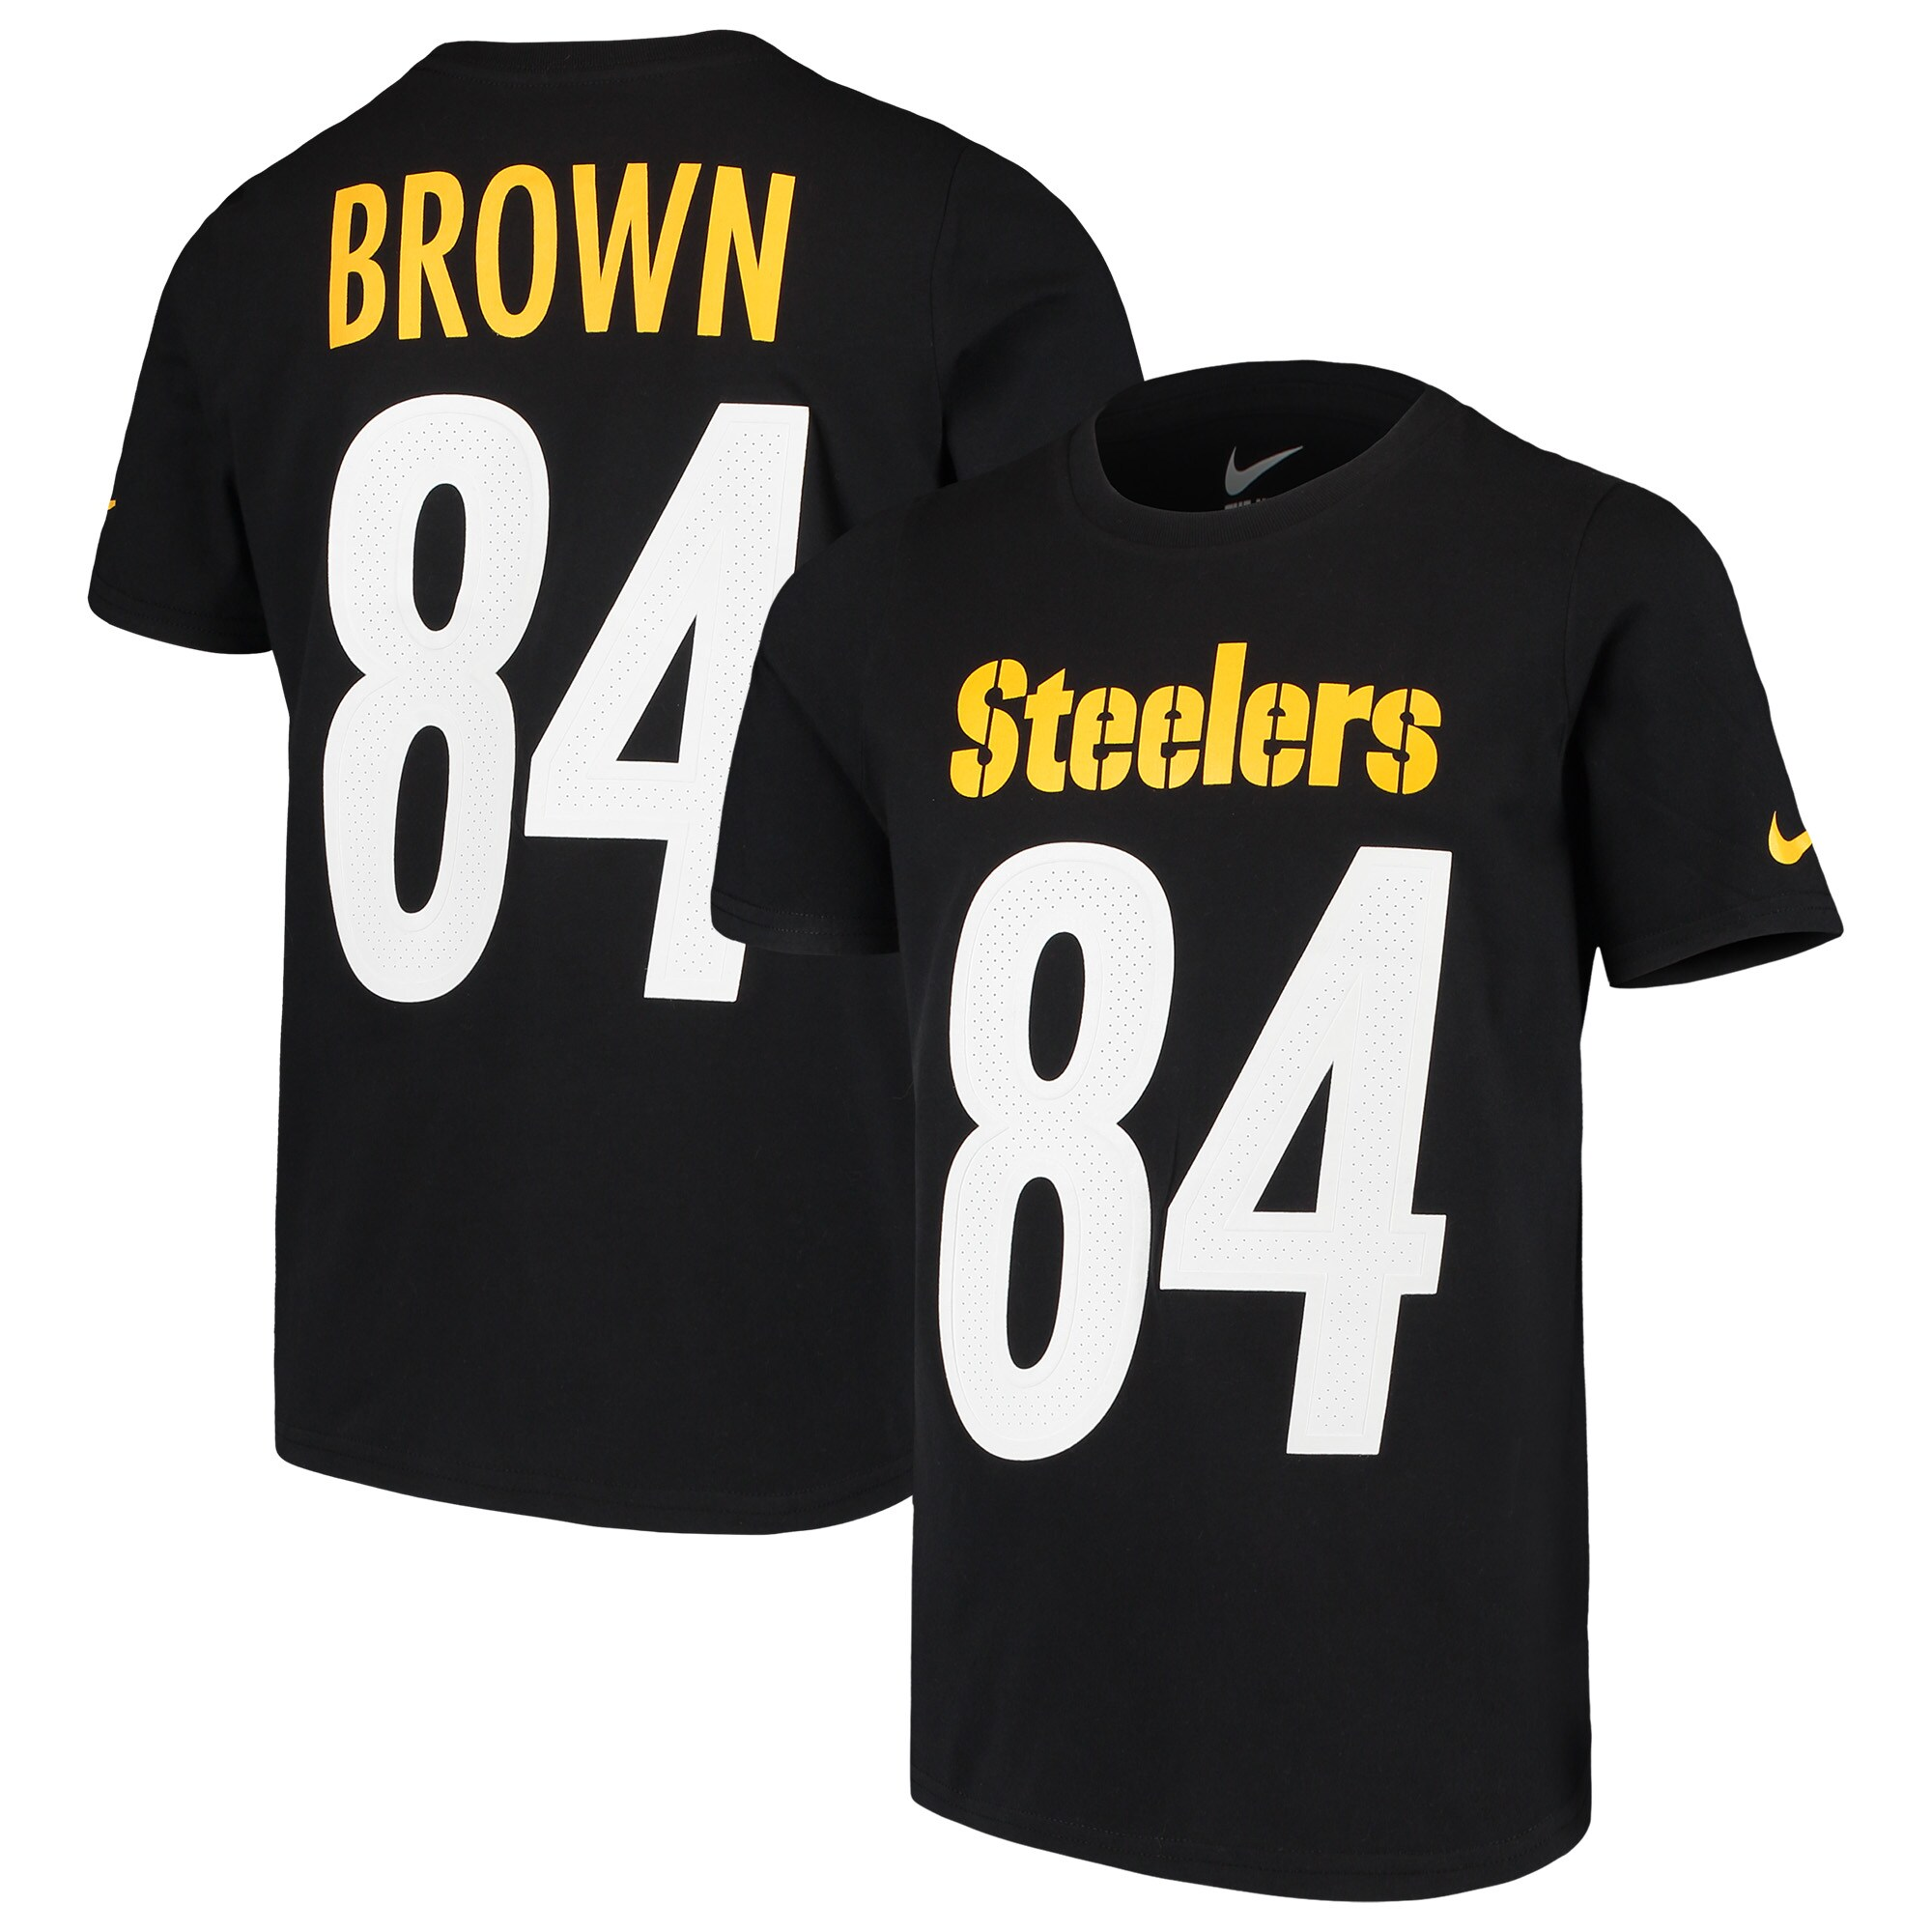 Antonio Brown Pittsburgh Steelers Nike Youth Player Pride 3.0 Name & Number T-Shirt - Black